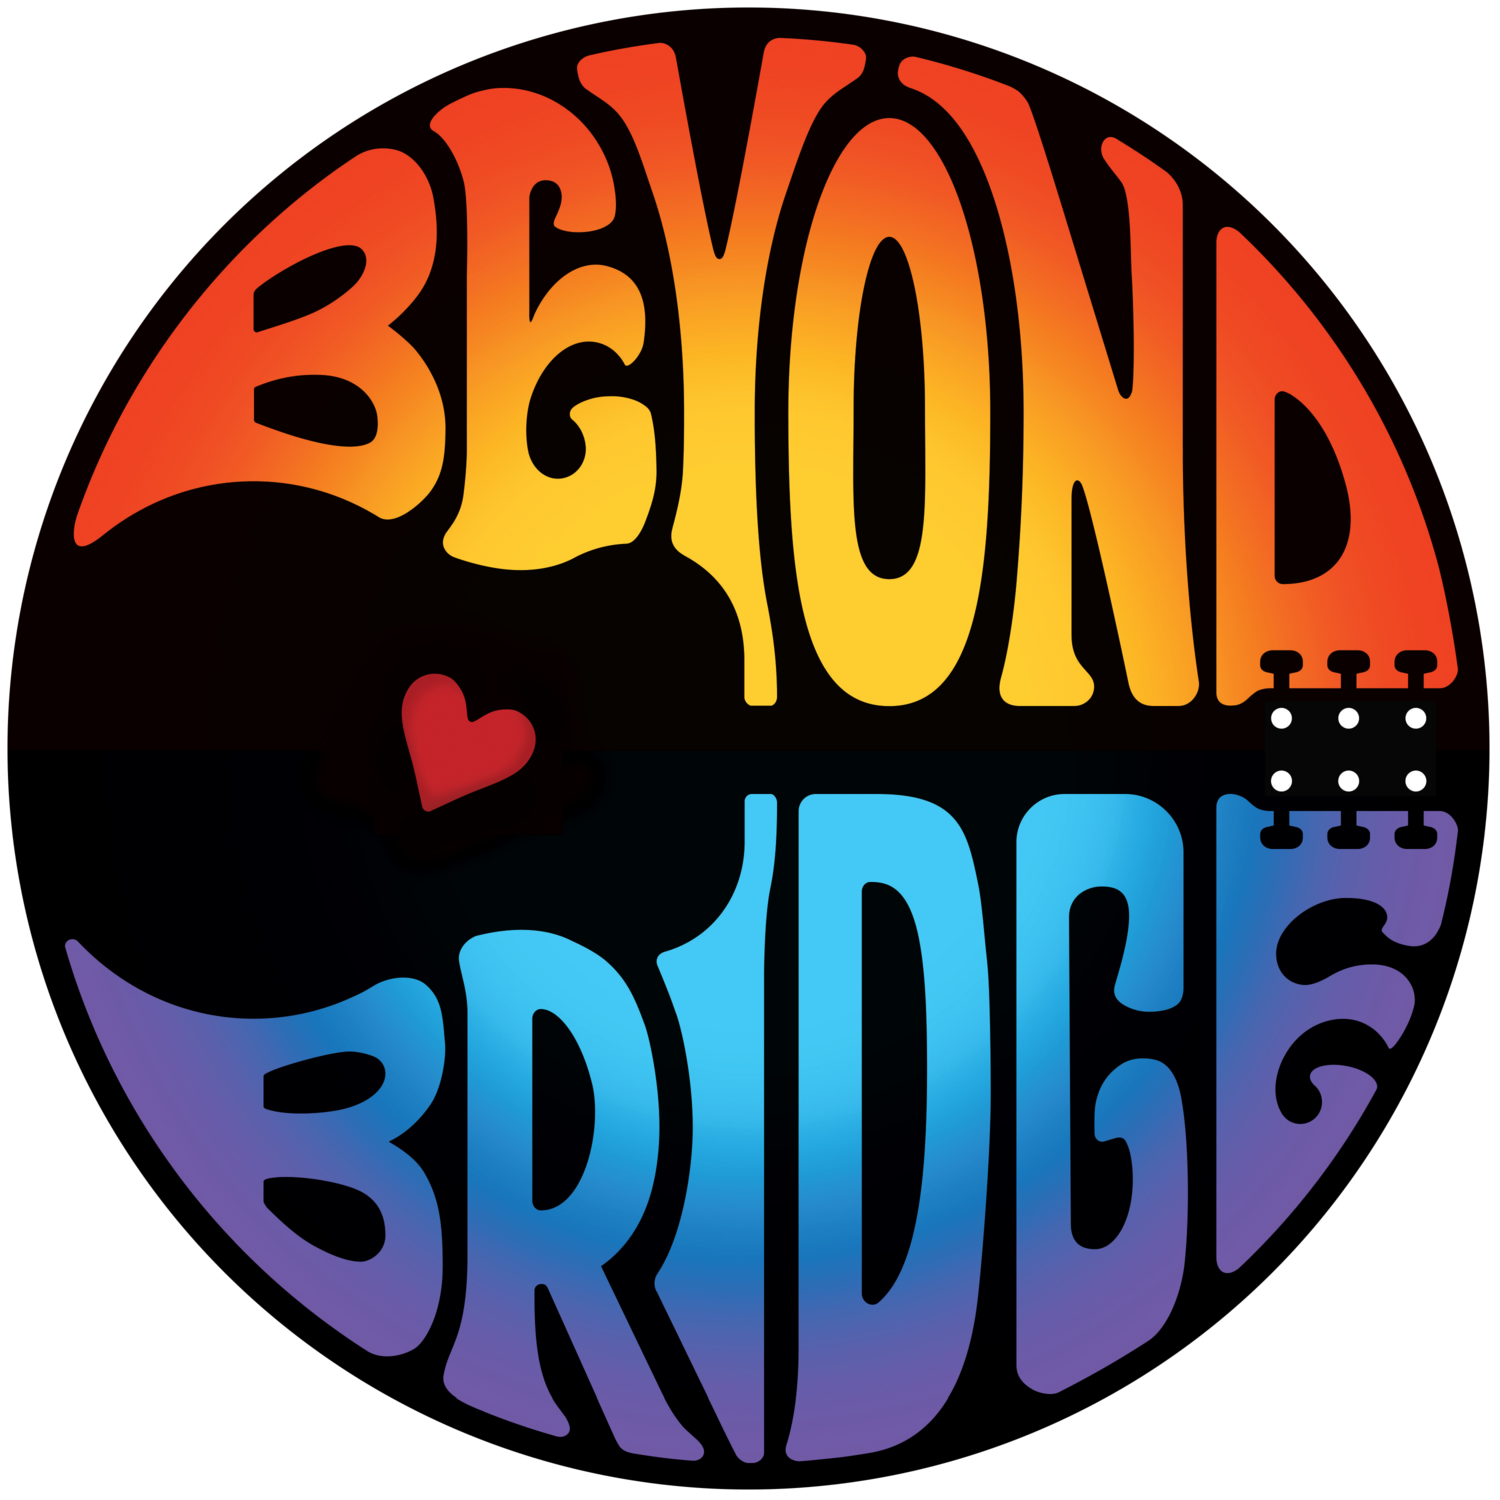 Beyond Bridge